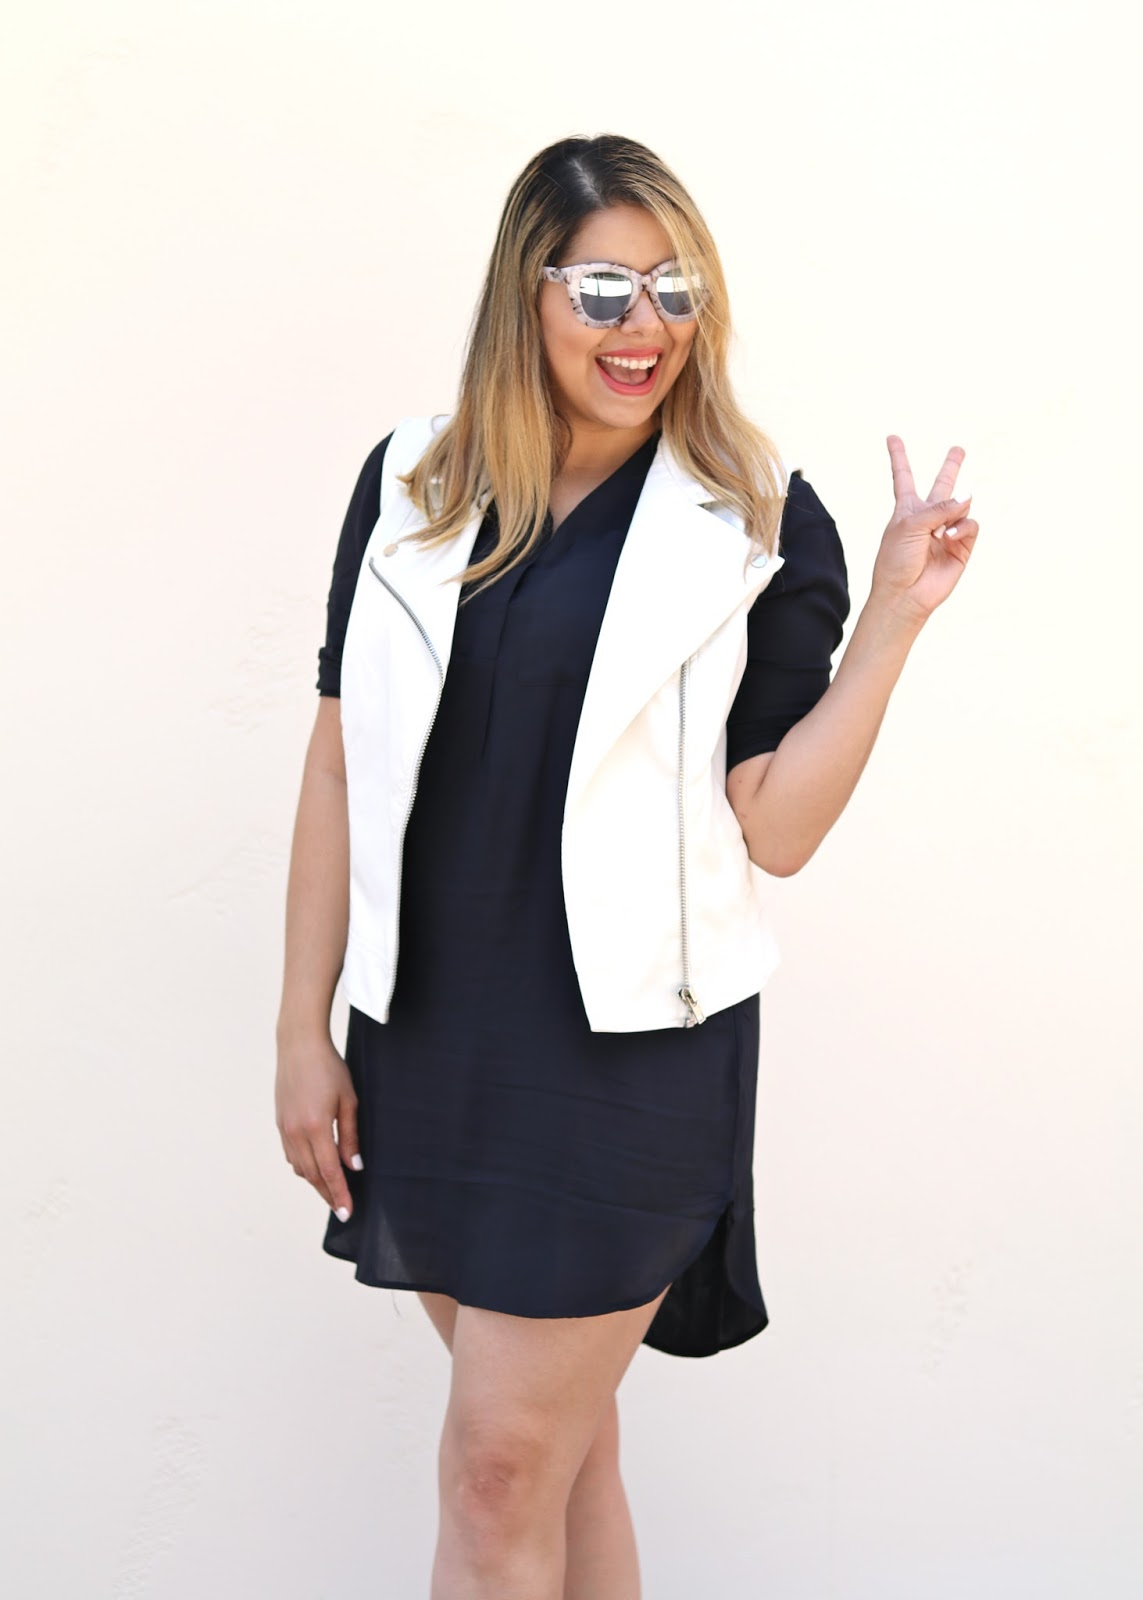 White Moto Vest Outfit, San Diego Fashion Blogger, San Diego Style, how to wear a white moto vest, white moto vest look, quay sunglasses